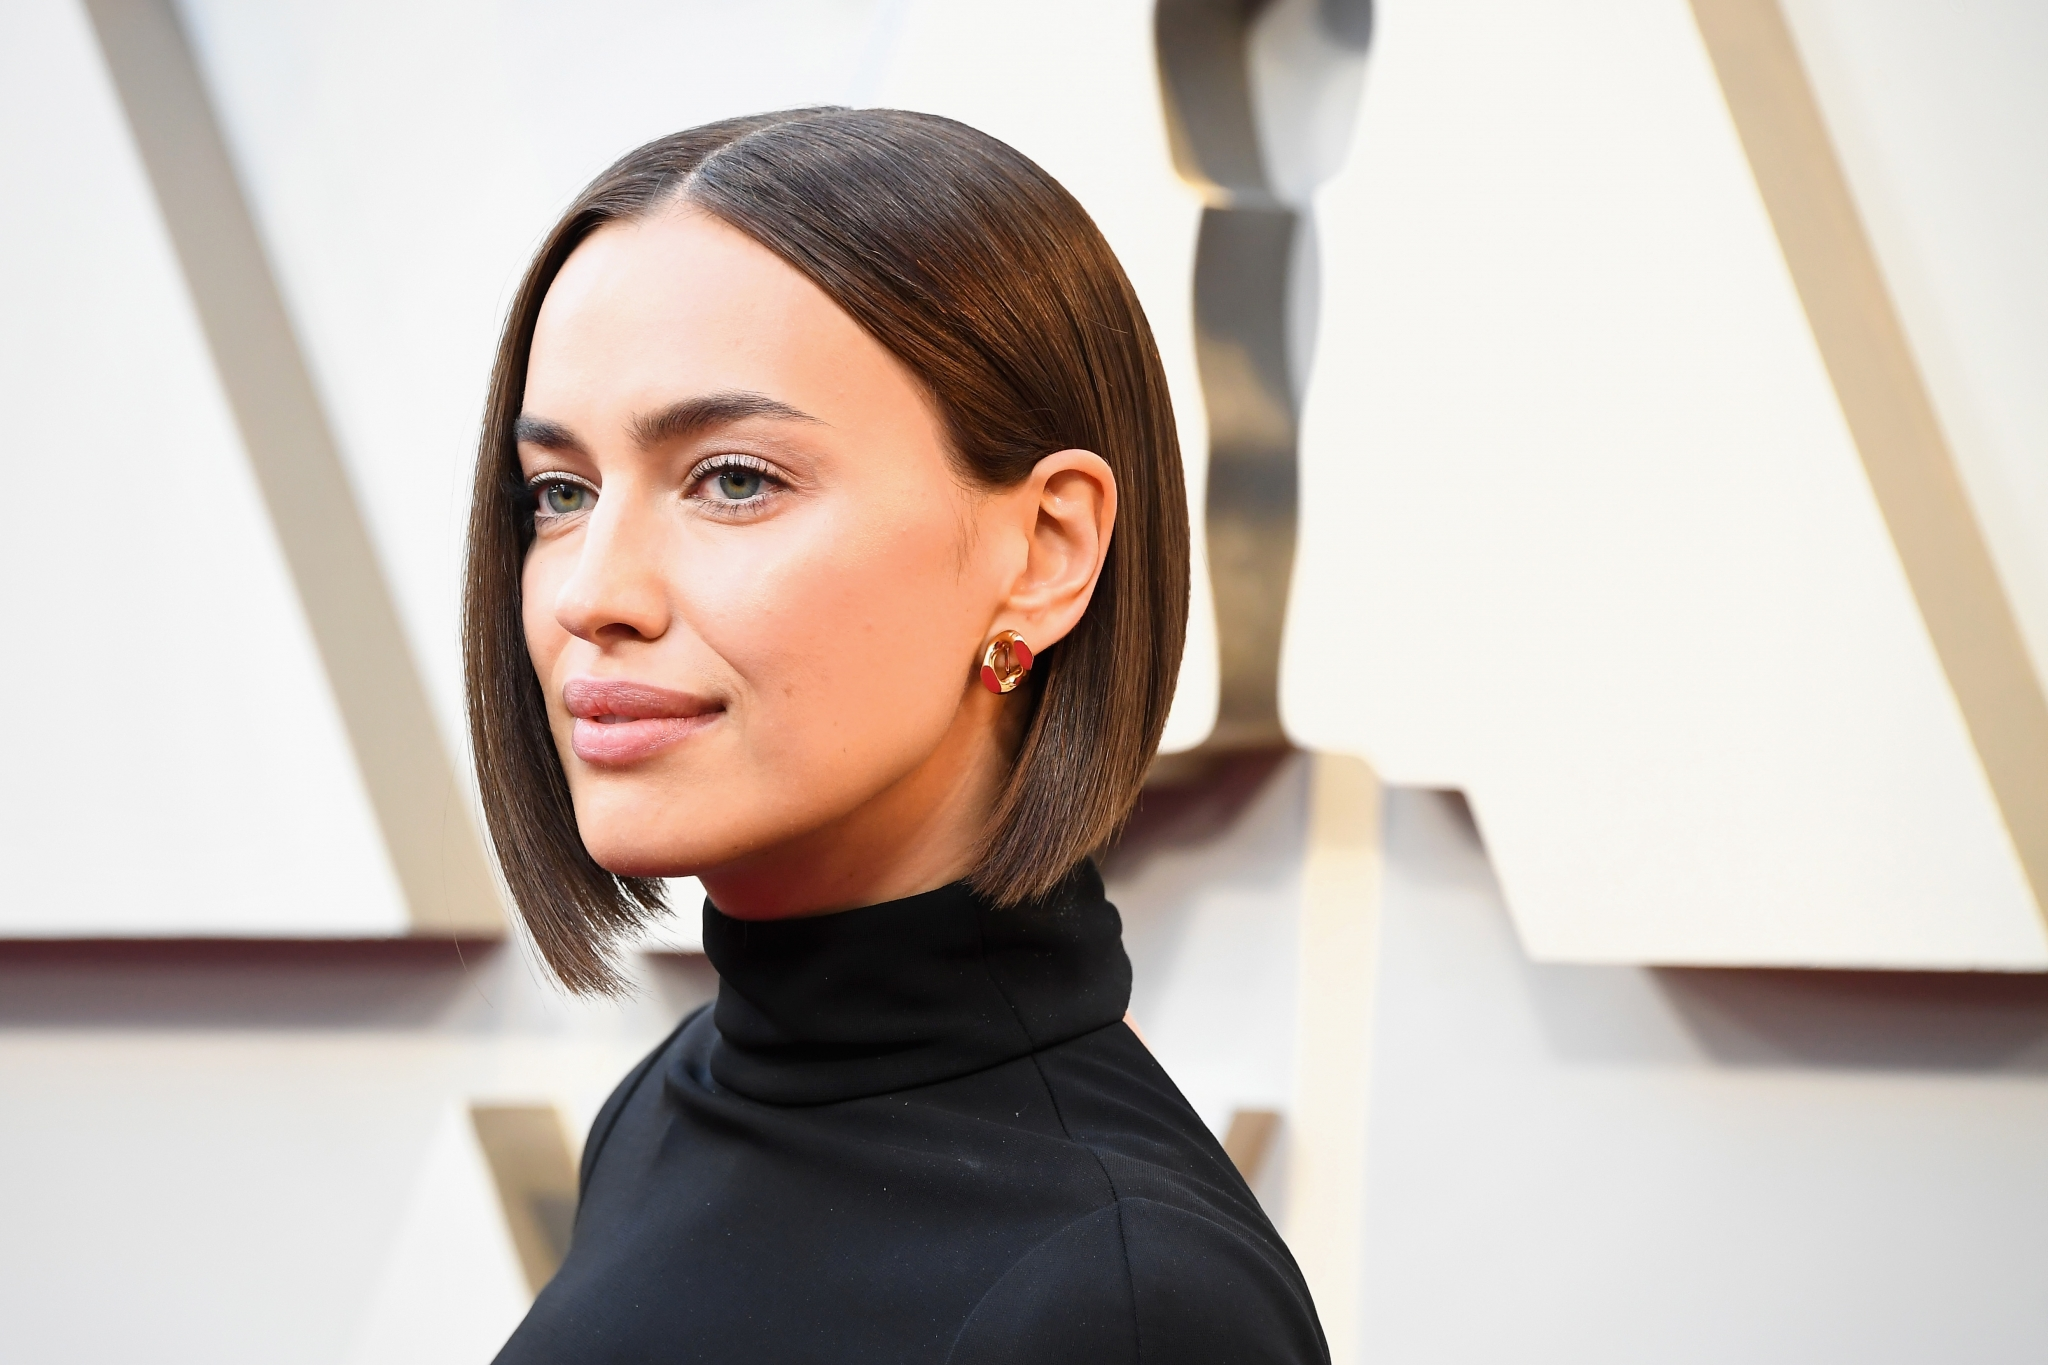 Oscars 2019 beauty irina shayk